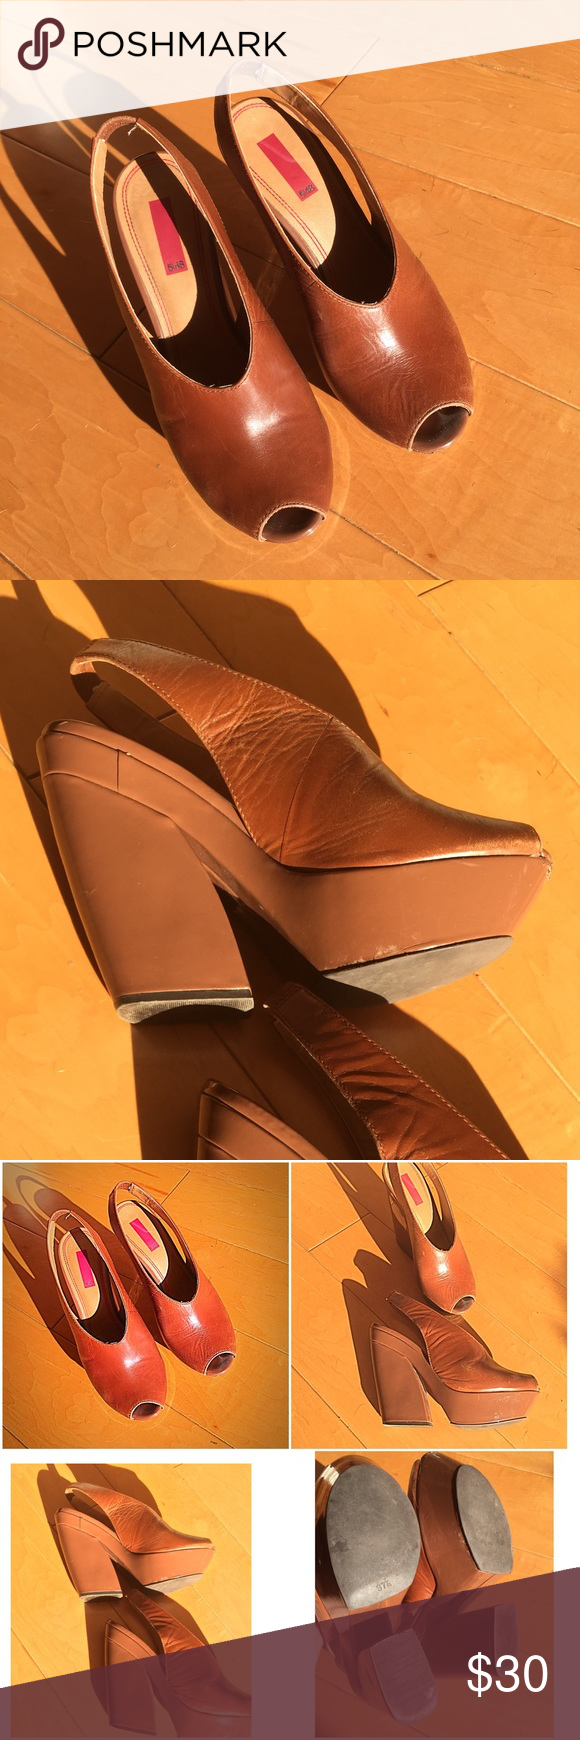 5/ 48 platform shoes brown real leather 5/48 platform shoes  genuine leather brown . Worn . In good condition. Very Minor scuffs, irrelevant for the overall look. Size 7.5 5/48 Shoes Platforms